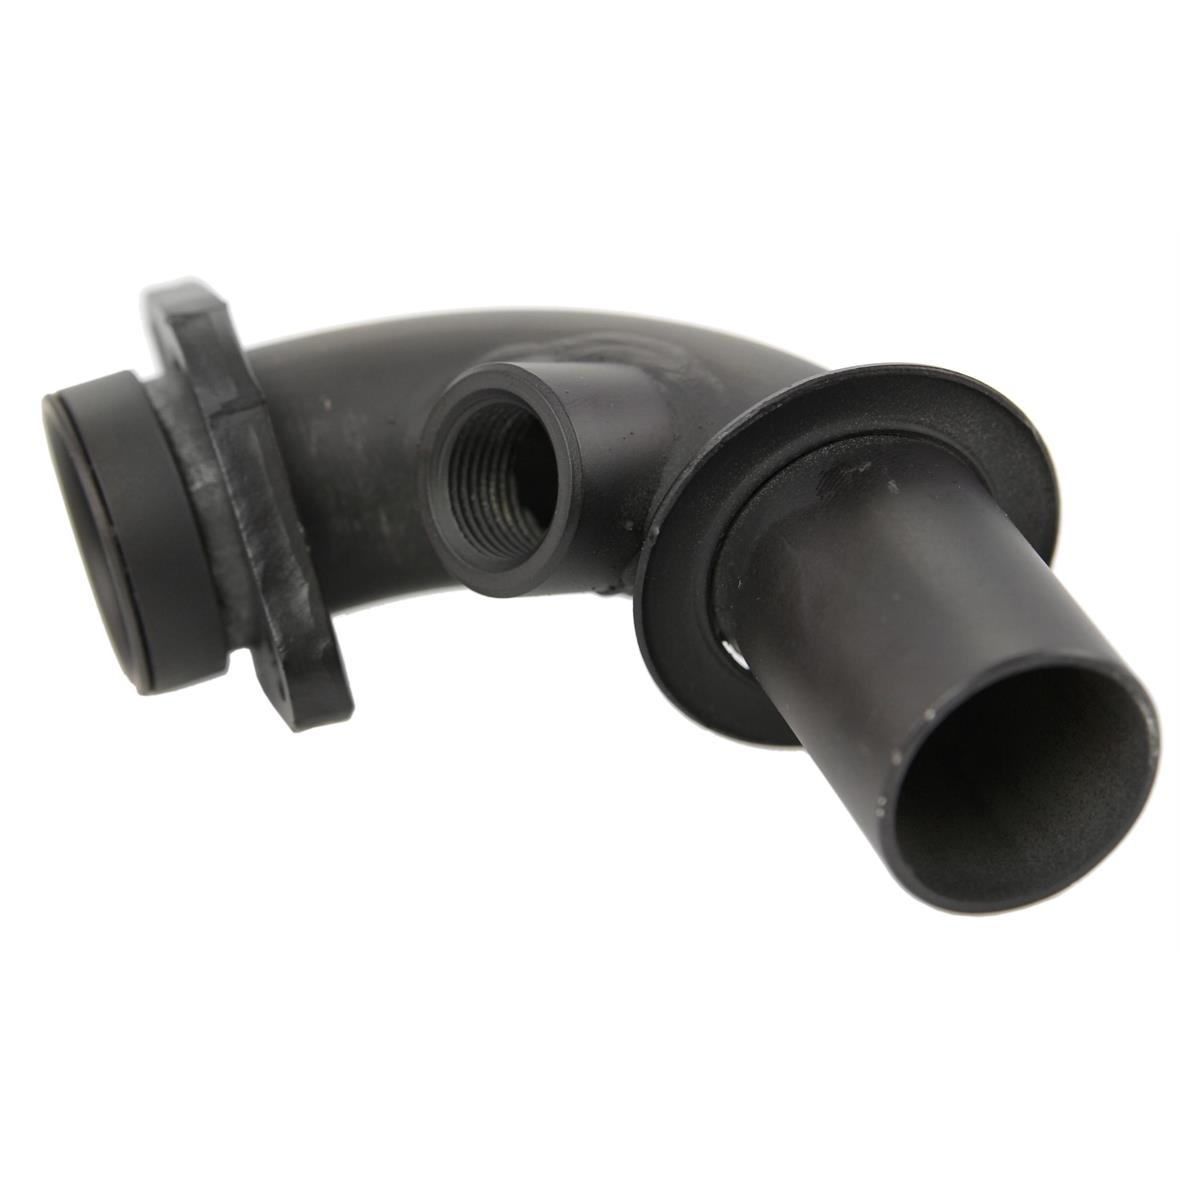 Product image for 'Exhaust Manifold PIAGGIOTitle'